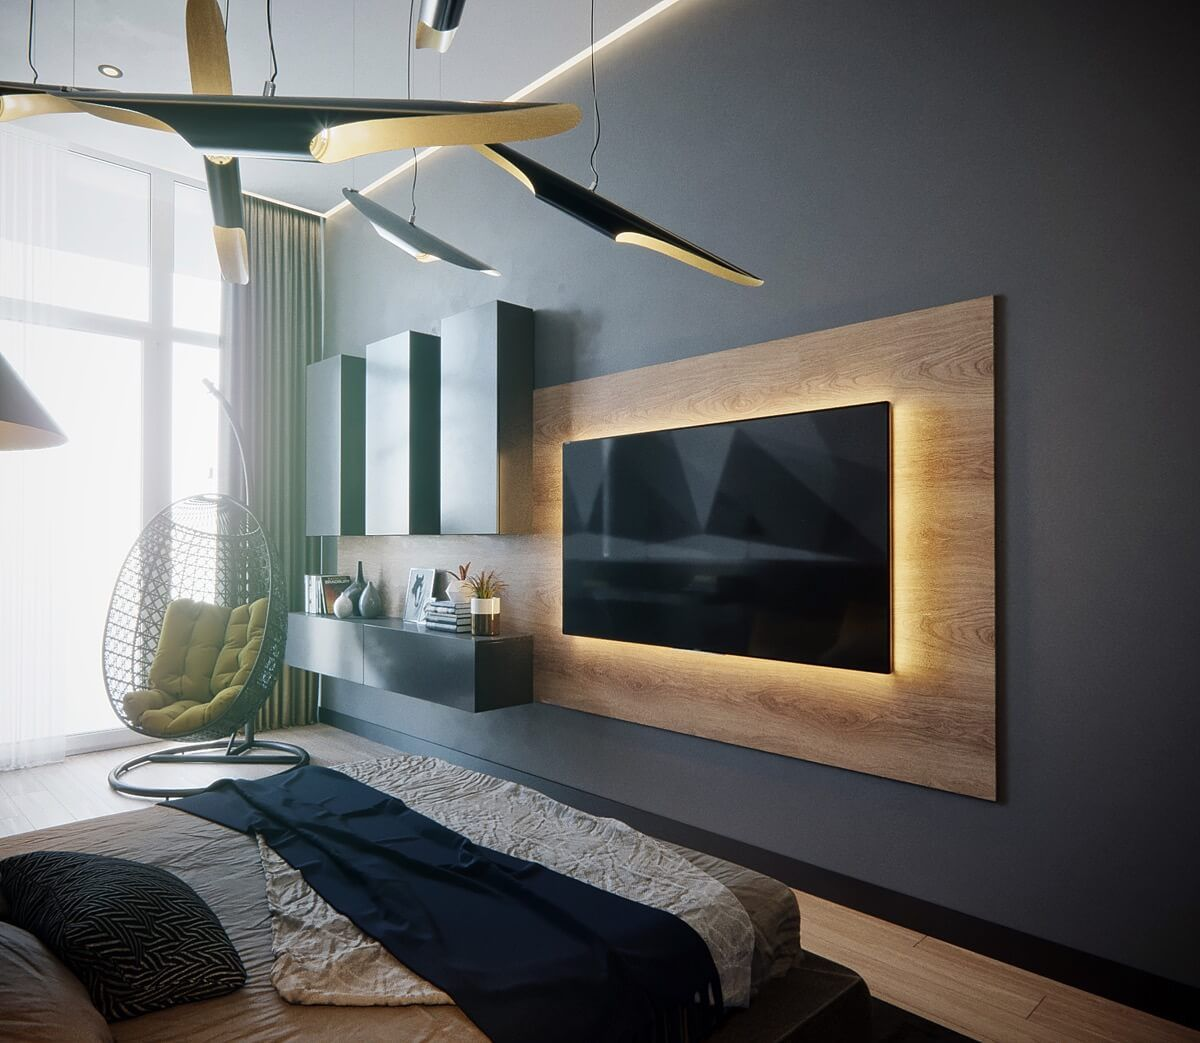 35 Modern Led Tv Wall Panel Designs For Your Living Room Bedroom Tv Wall Living Room Tv Wall Tv In Bedroom